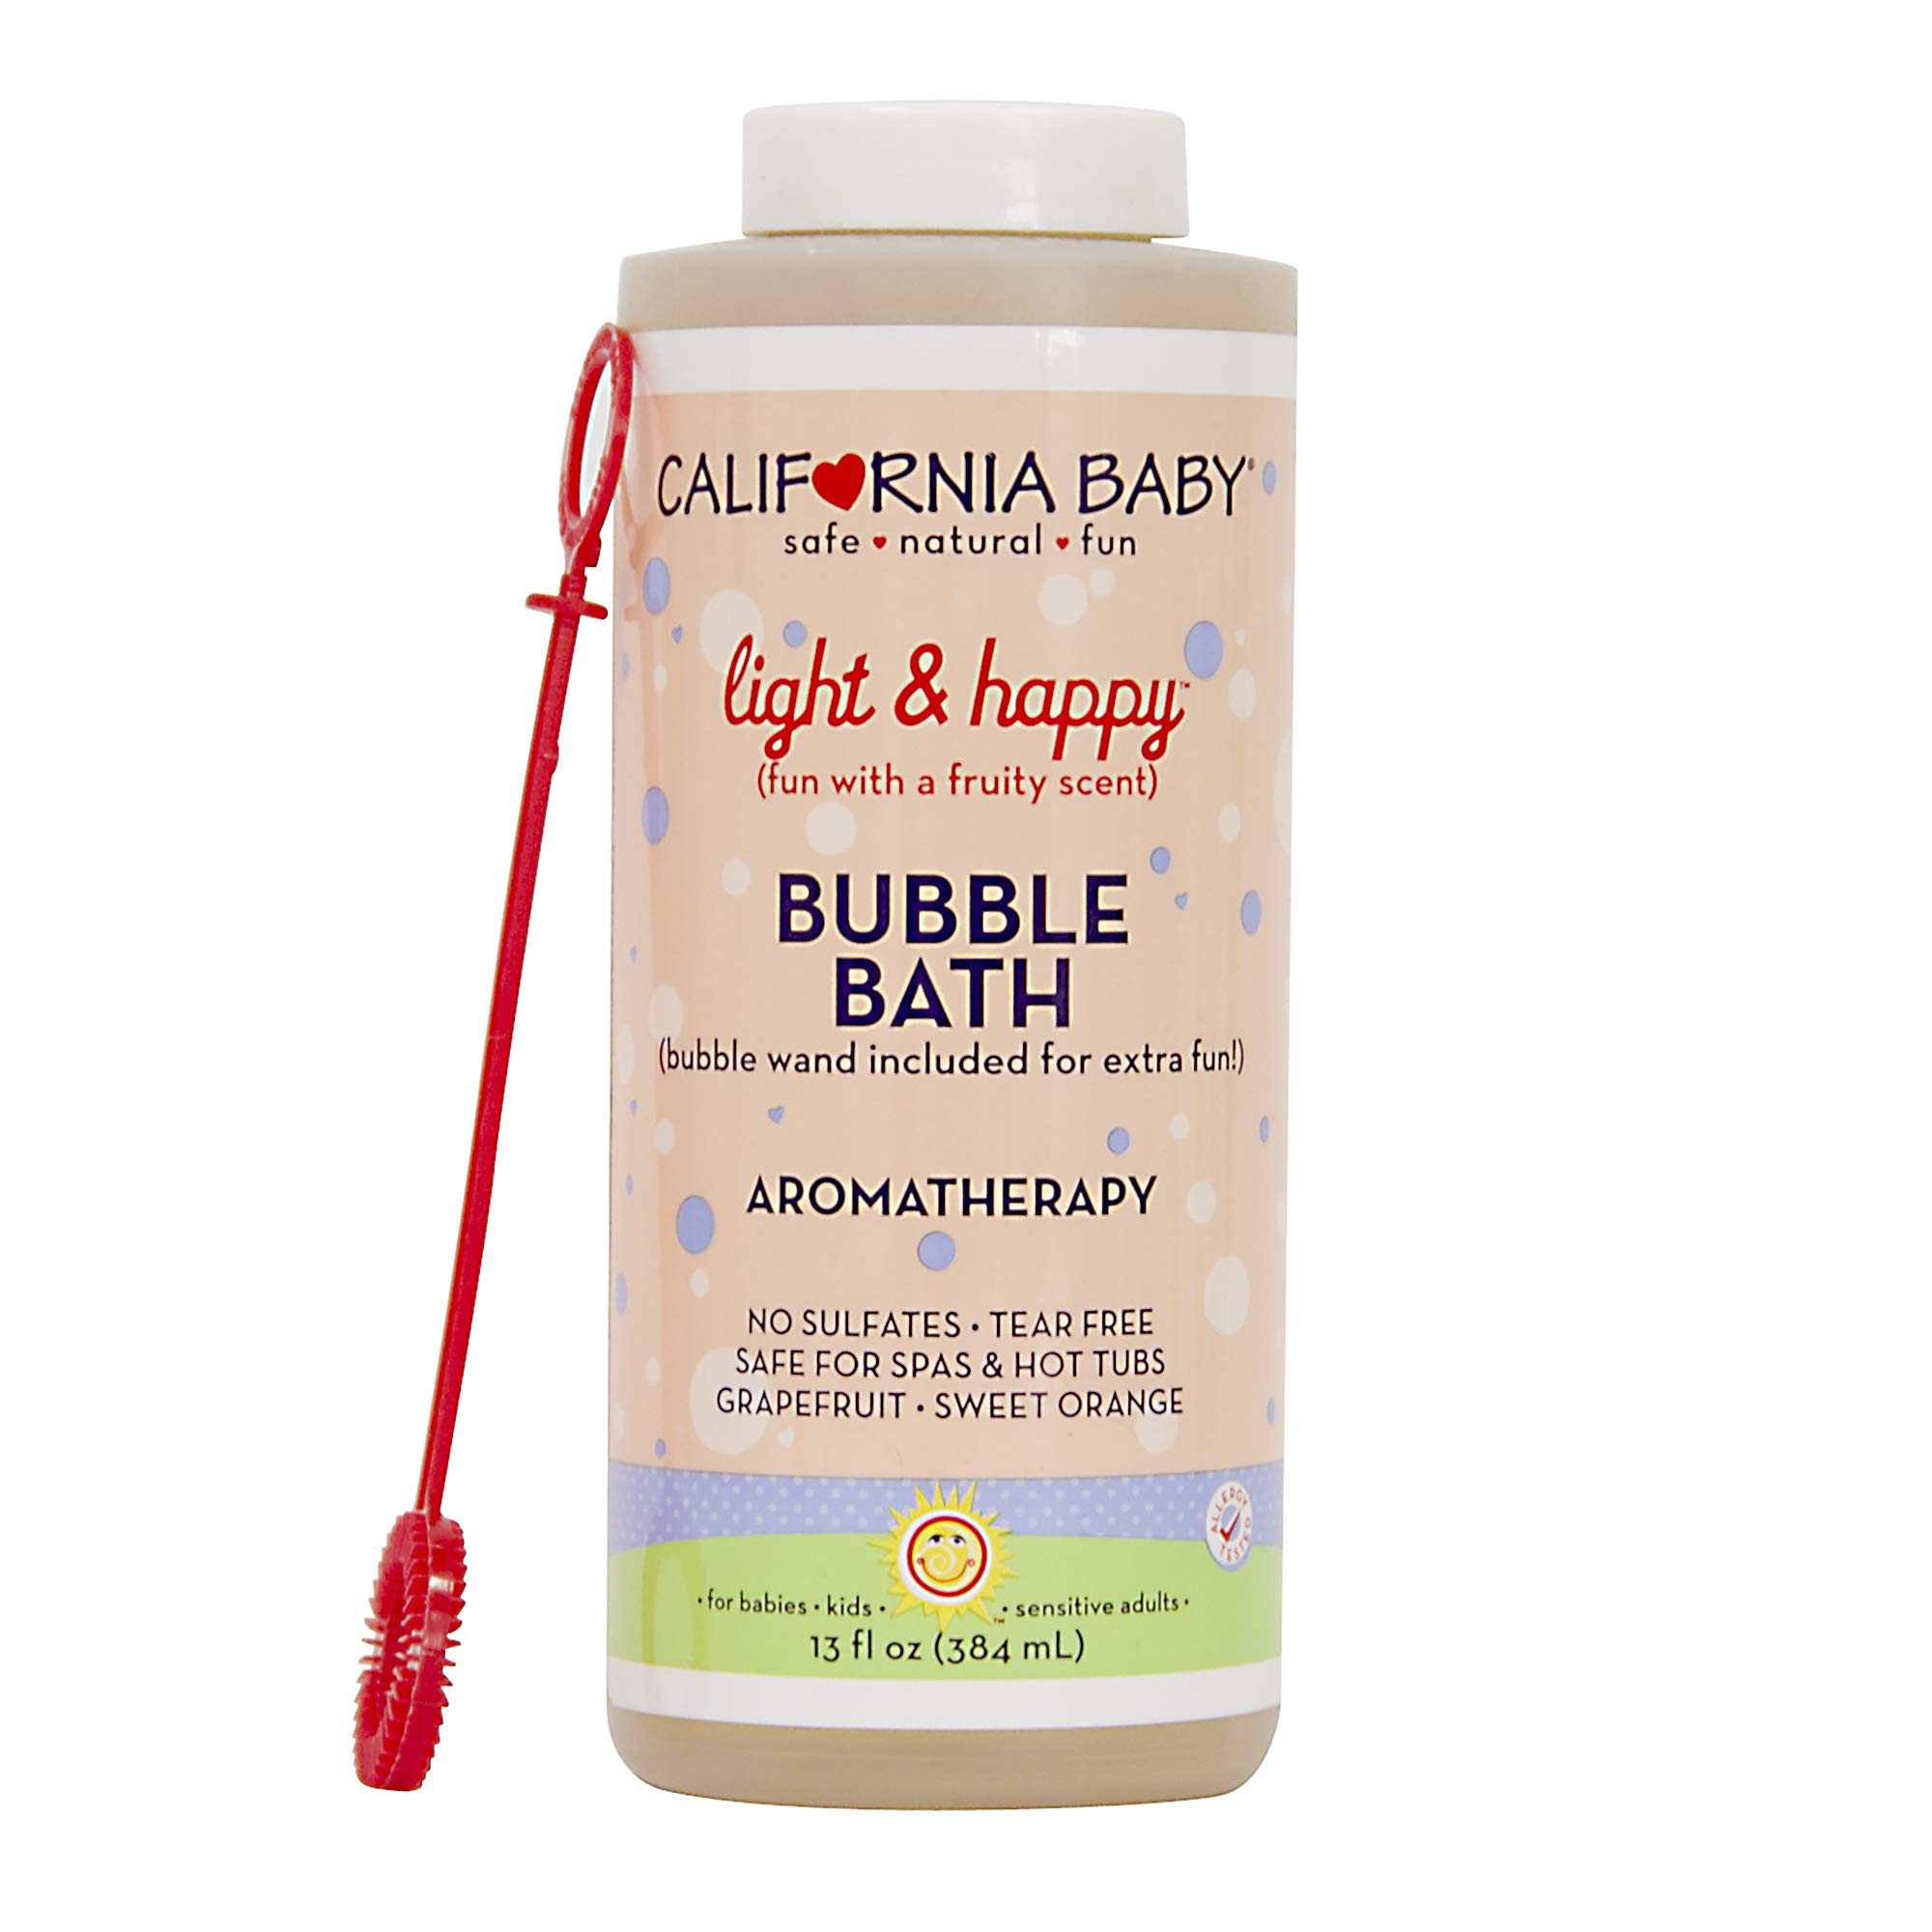 California Baby Light and Happy Bubble Bath | No Tear | Pure Essential Oils for Bathing | Hot Tubs, or Spa Use | Moisturizing Organic Aloe Vera and Calendula Extract |(13 fl. ounces) by California Baby